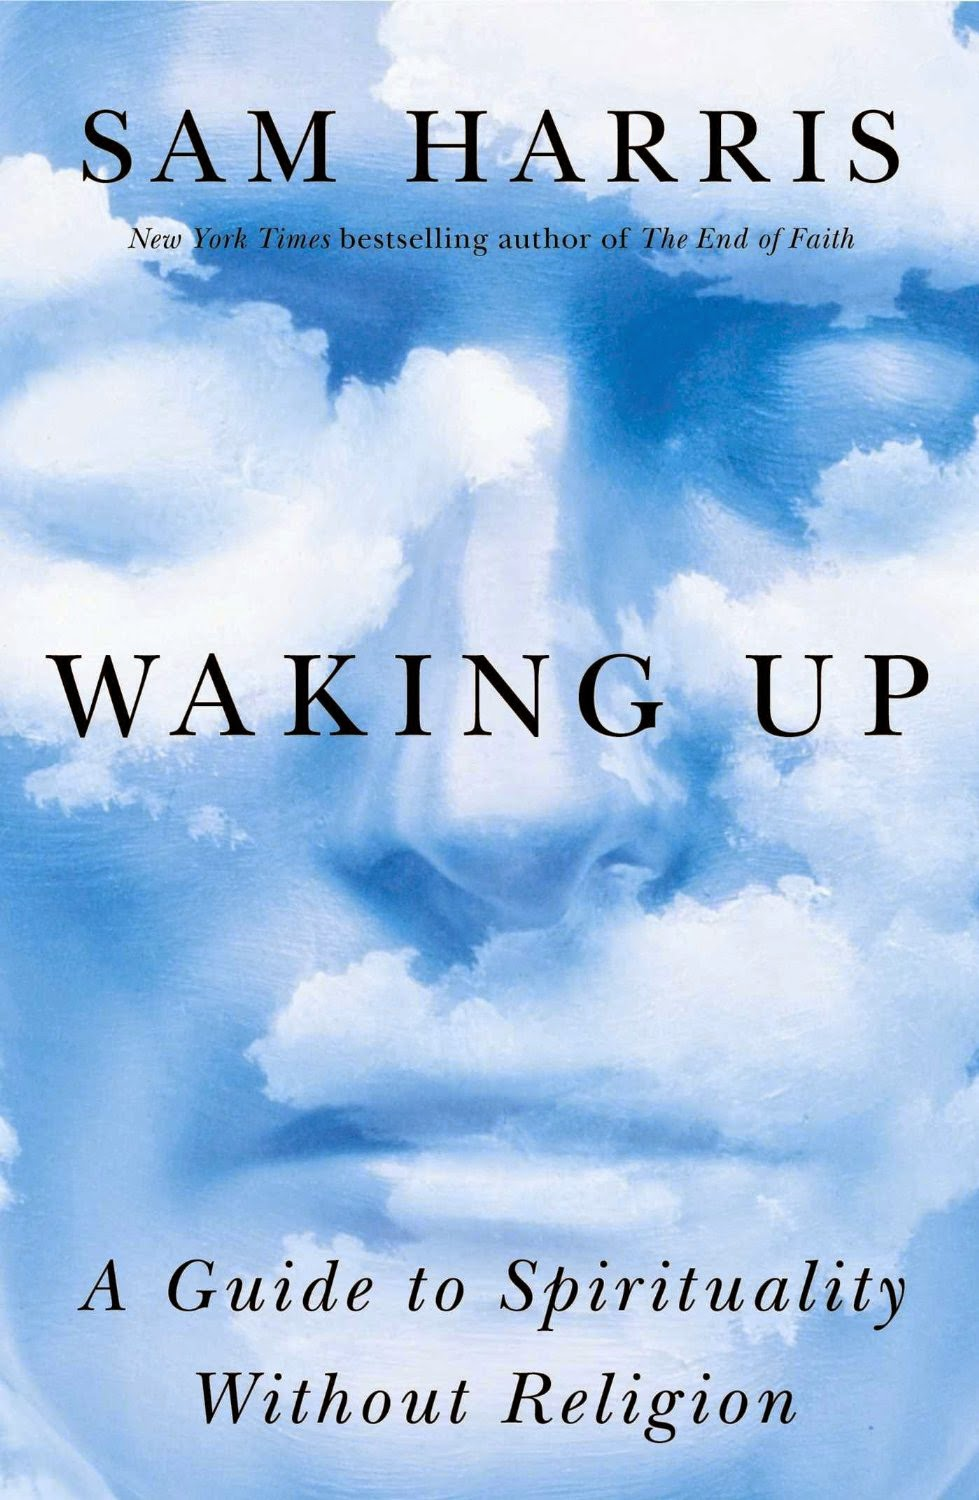 https://www.goodreads.com/book/show/18774981-waking-up